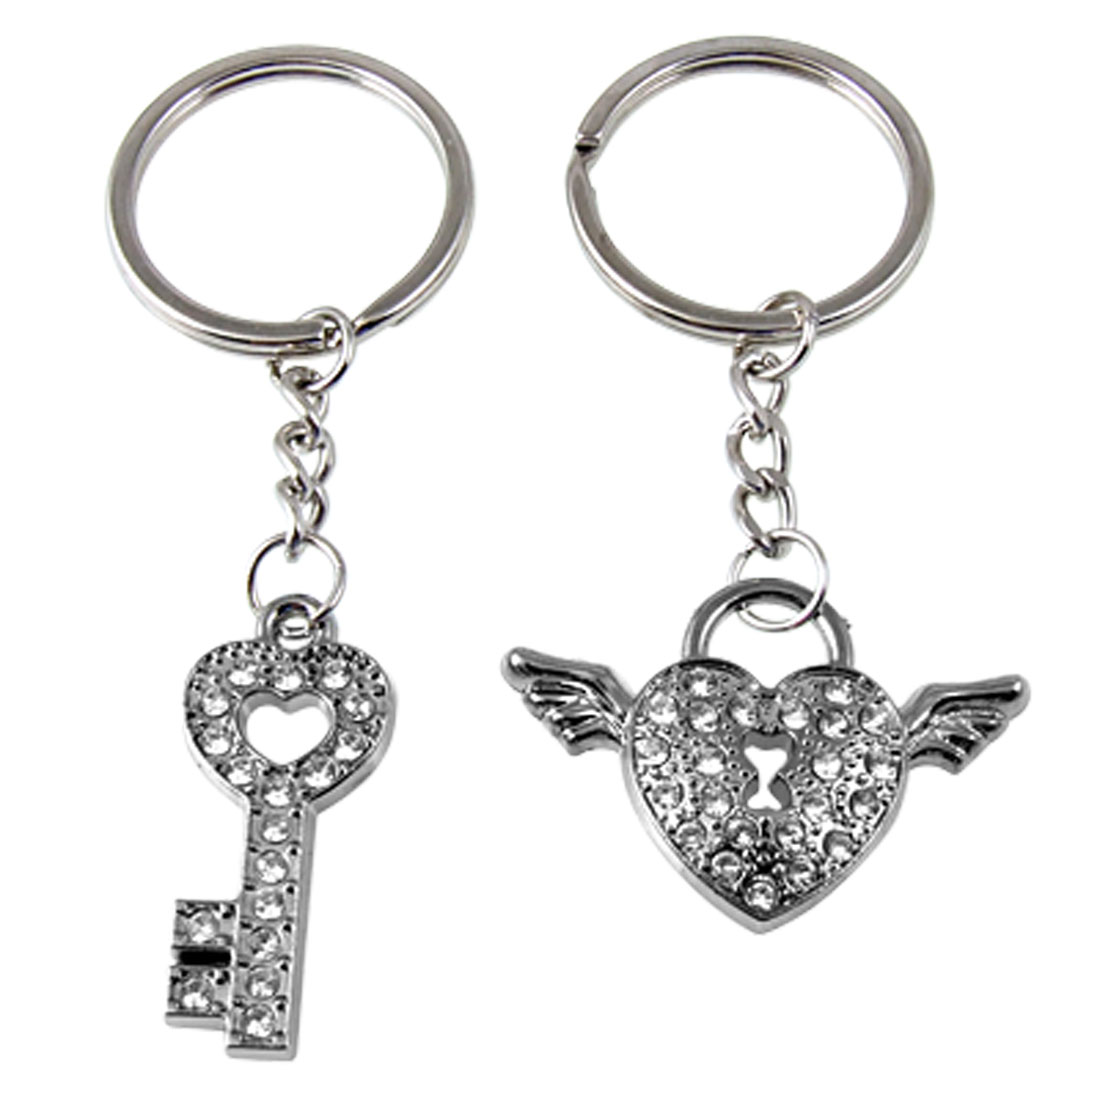 1 Pair Rhinestone Decor Key w Heart Wing Design Keychain Ring